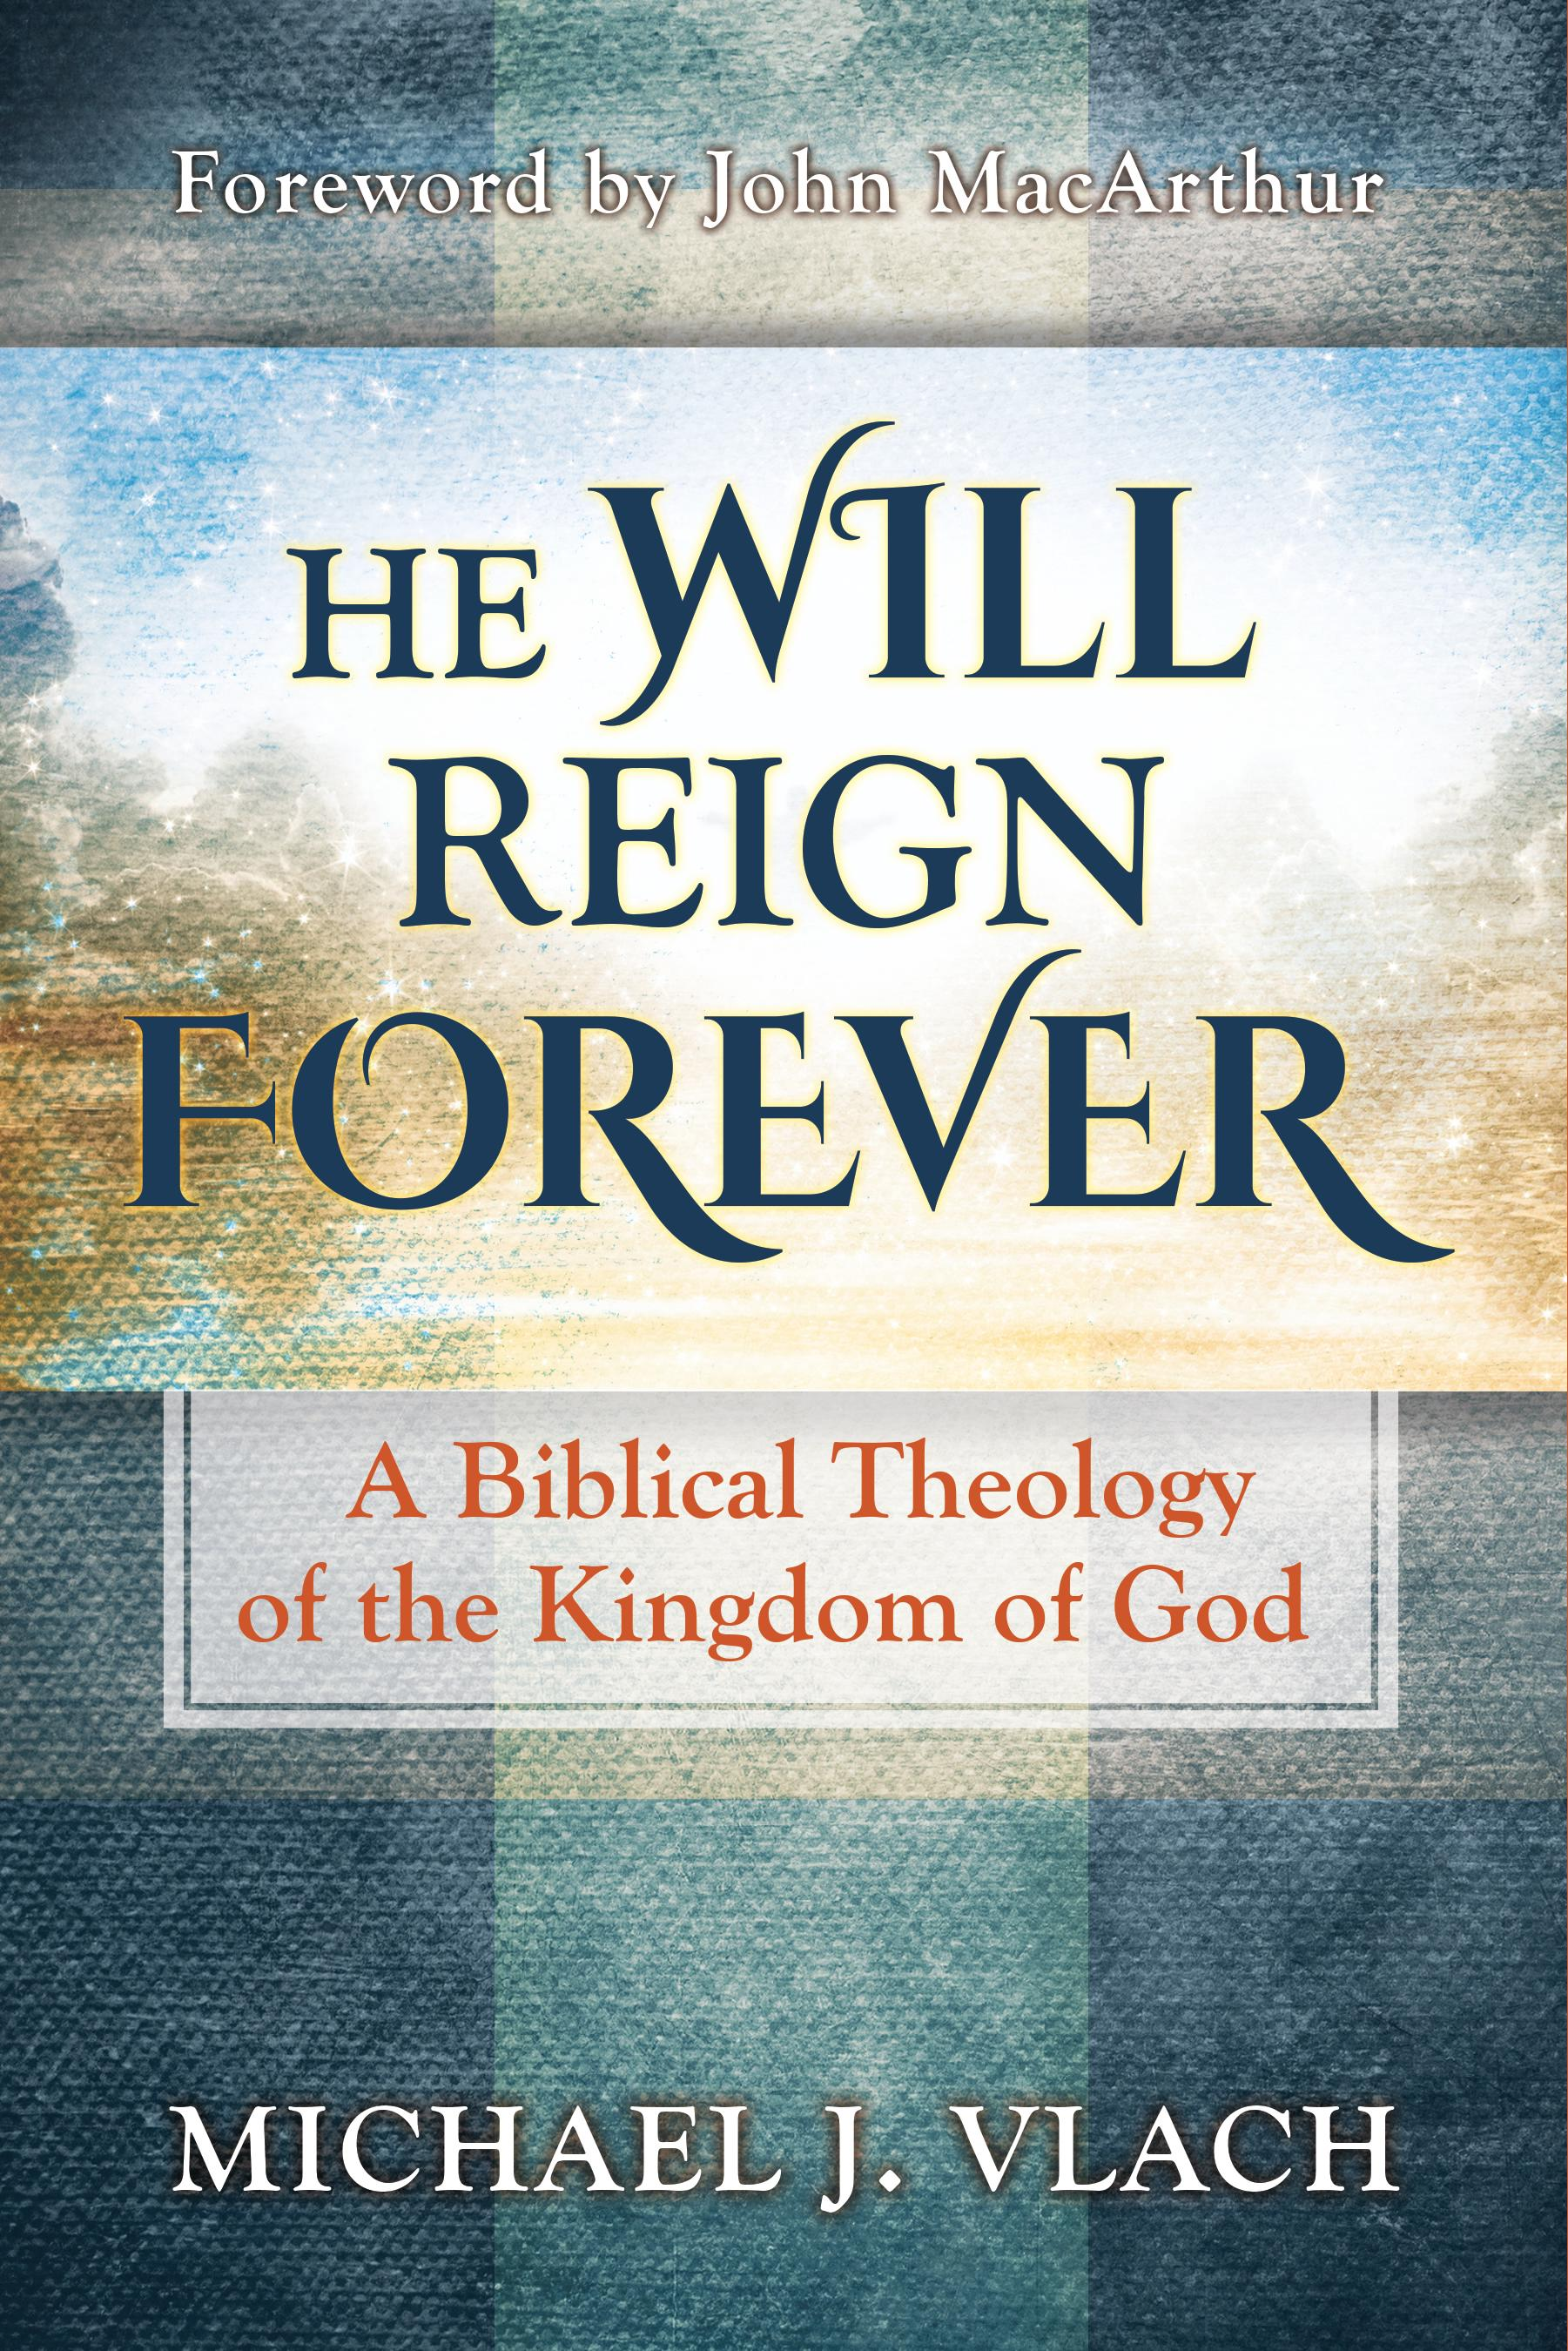 Review of  'He Will Reign Forever: A Biblical Theology of the Kingdom of God' by Michael J. Vlach